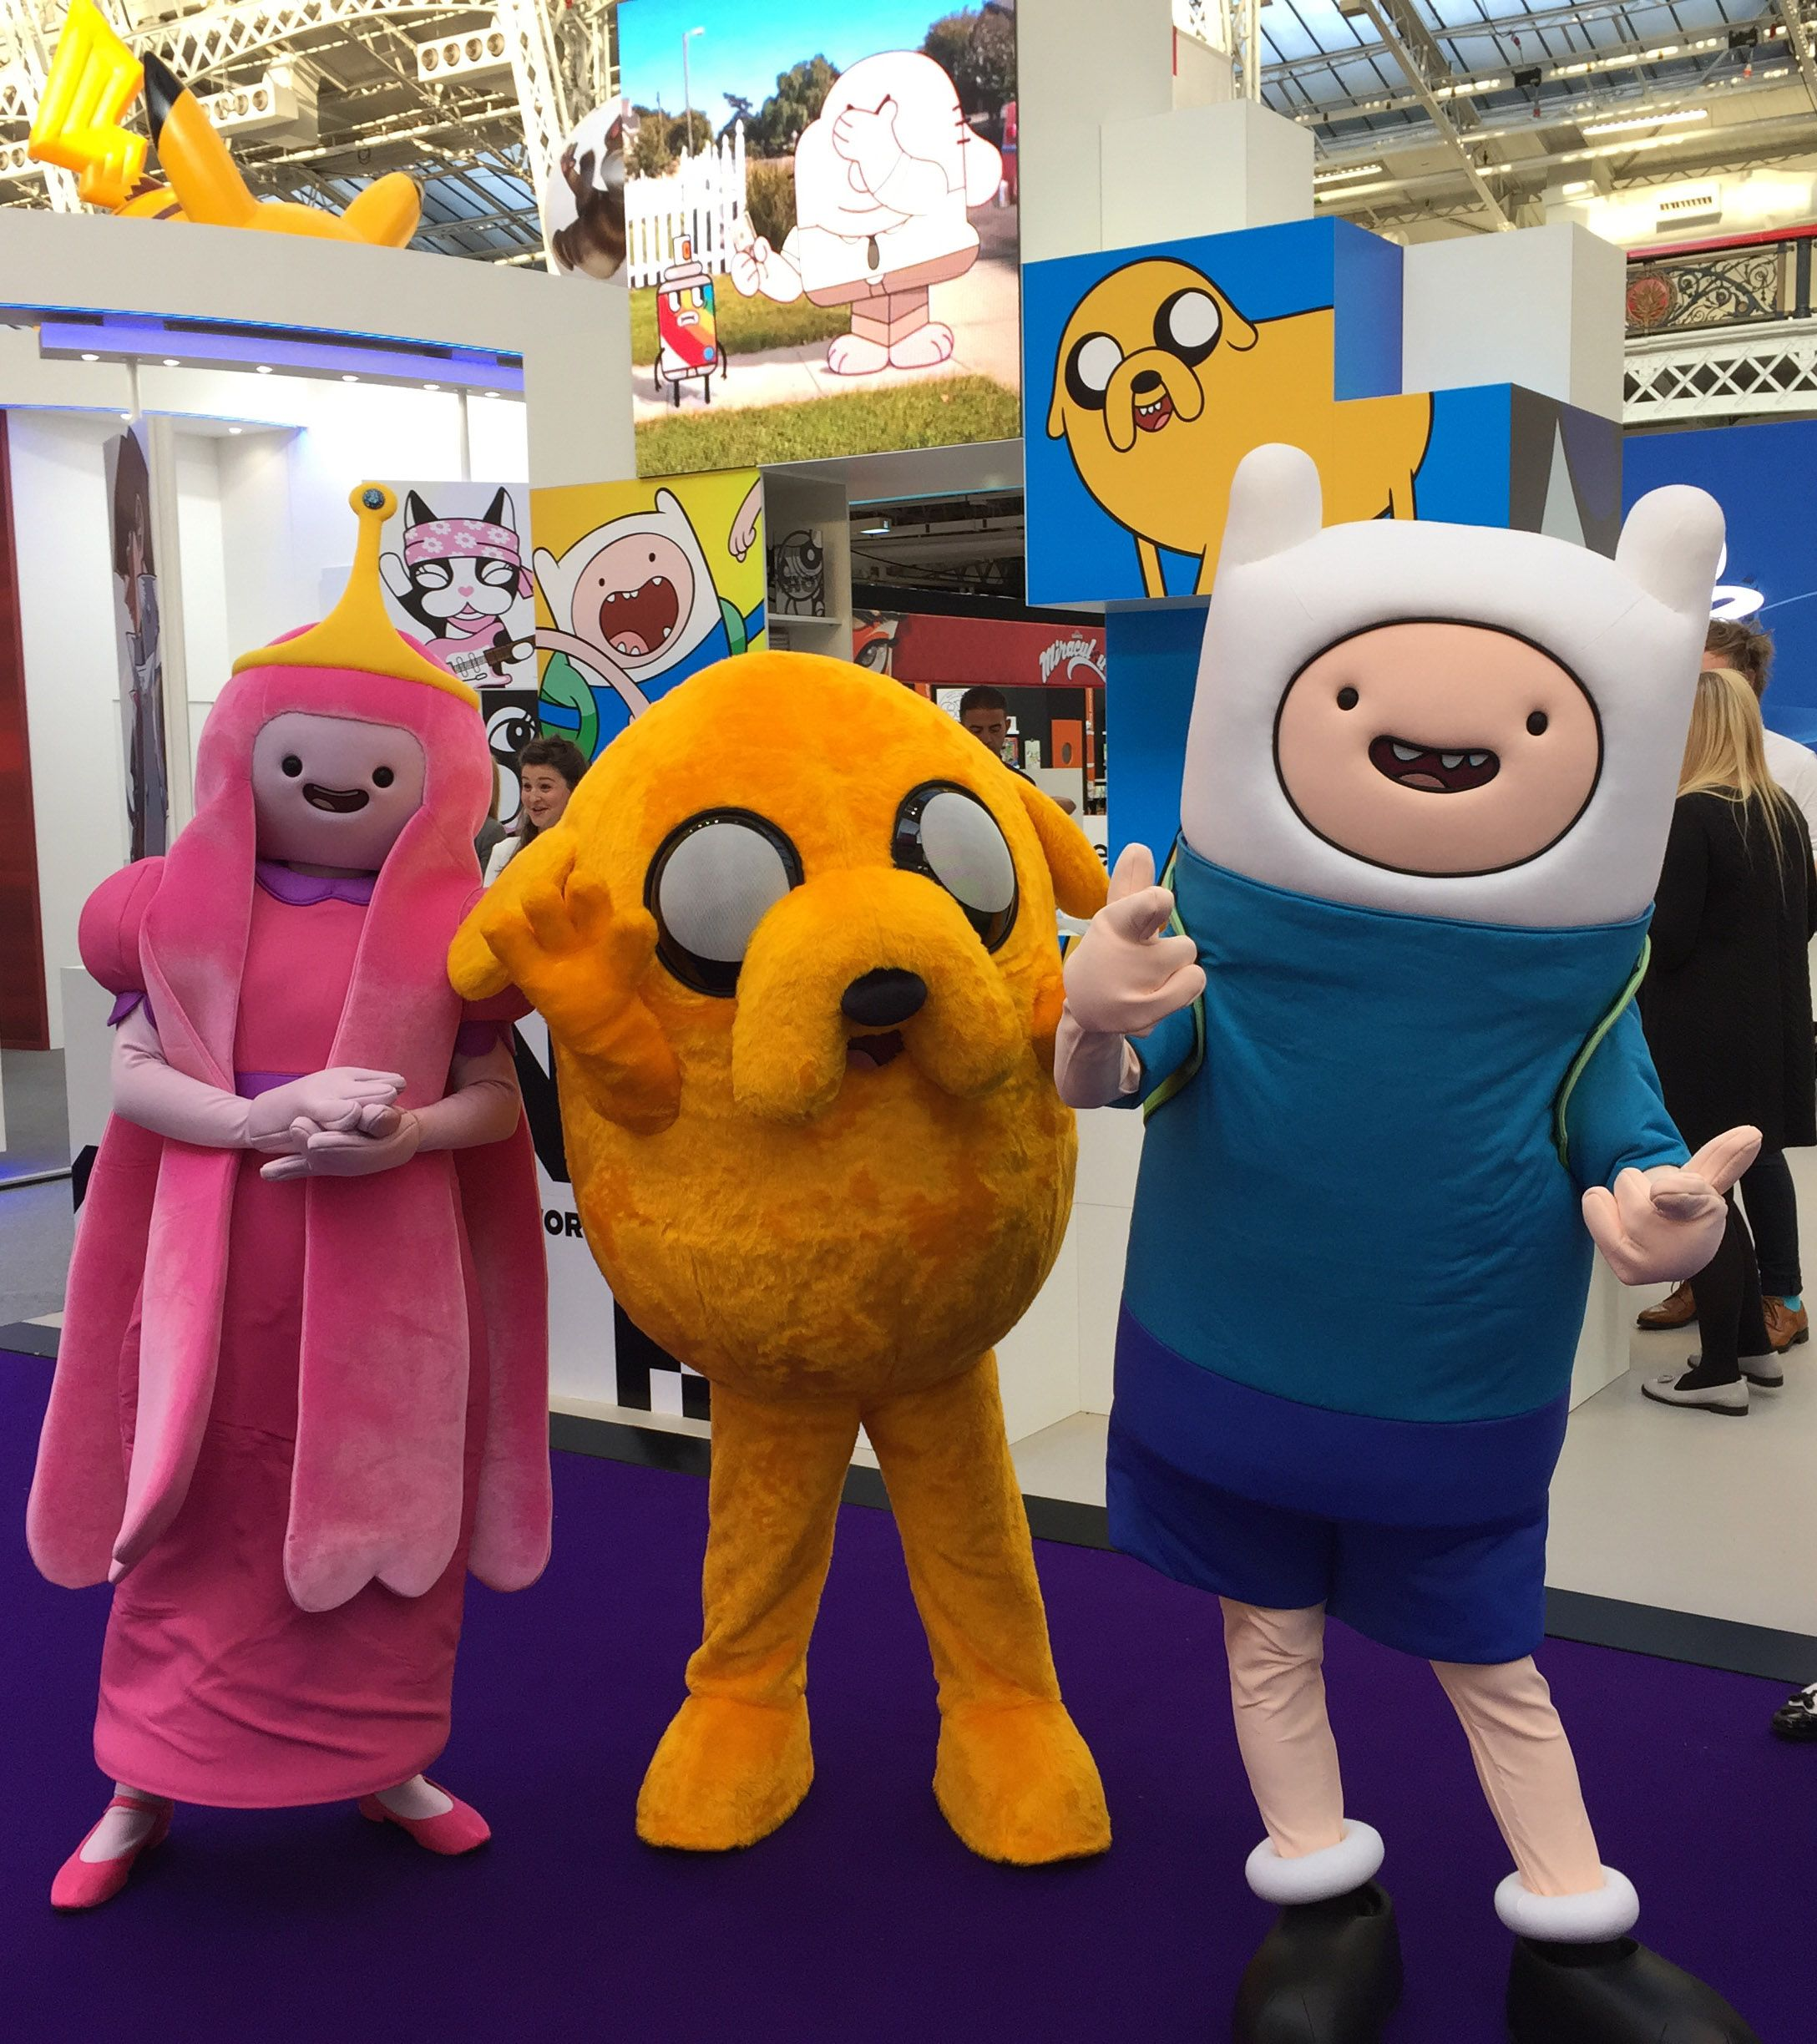 AdventureTime - Princess Bubblegum, Jake & Finn | mascot | Pinterest ...